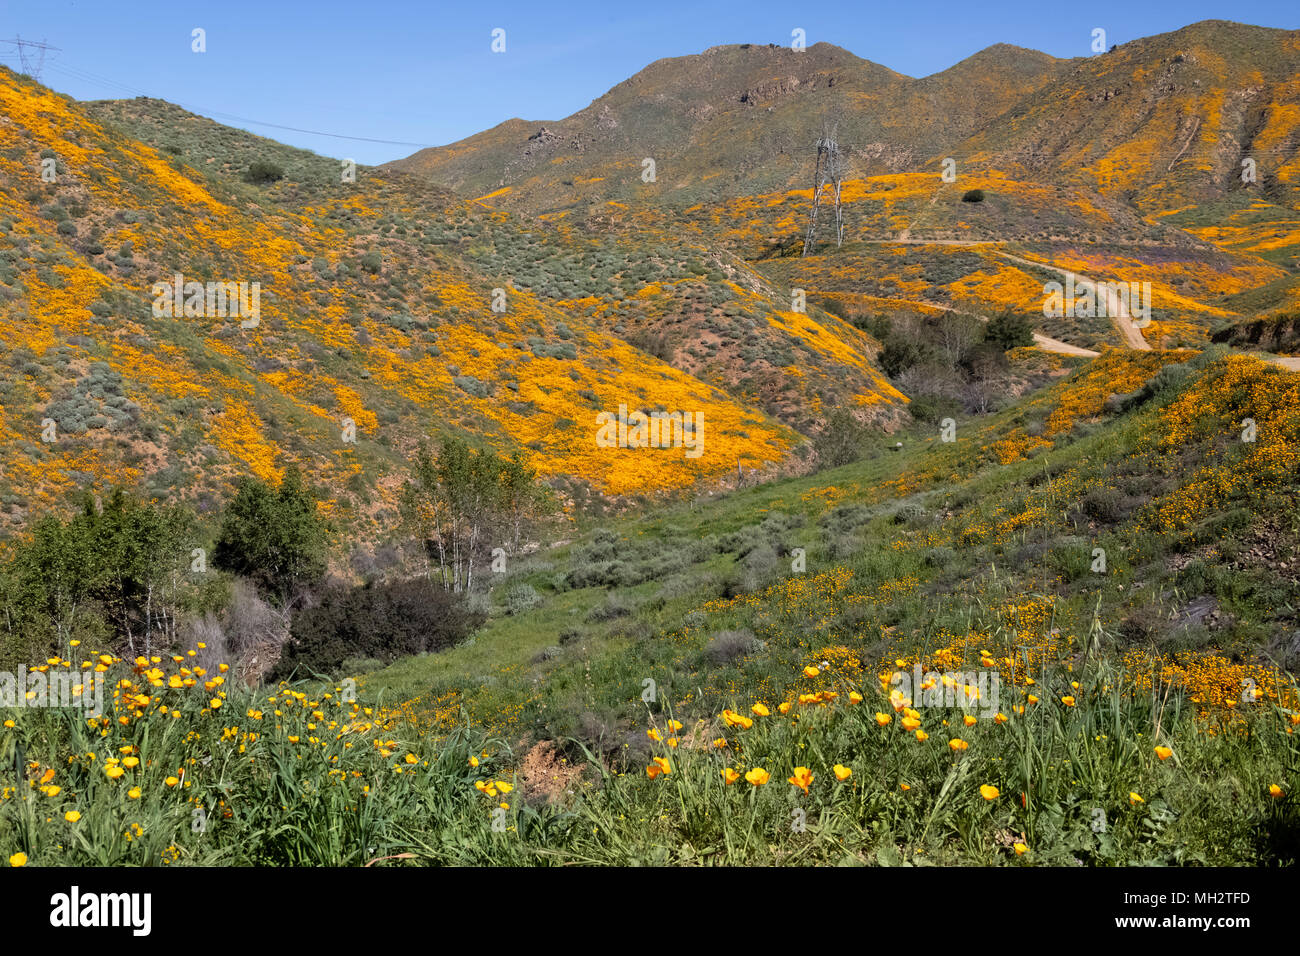 Super bloom on the hills in Wlaker Canyon California - Stock Image